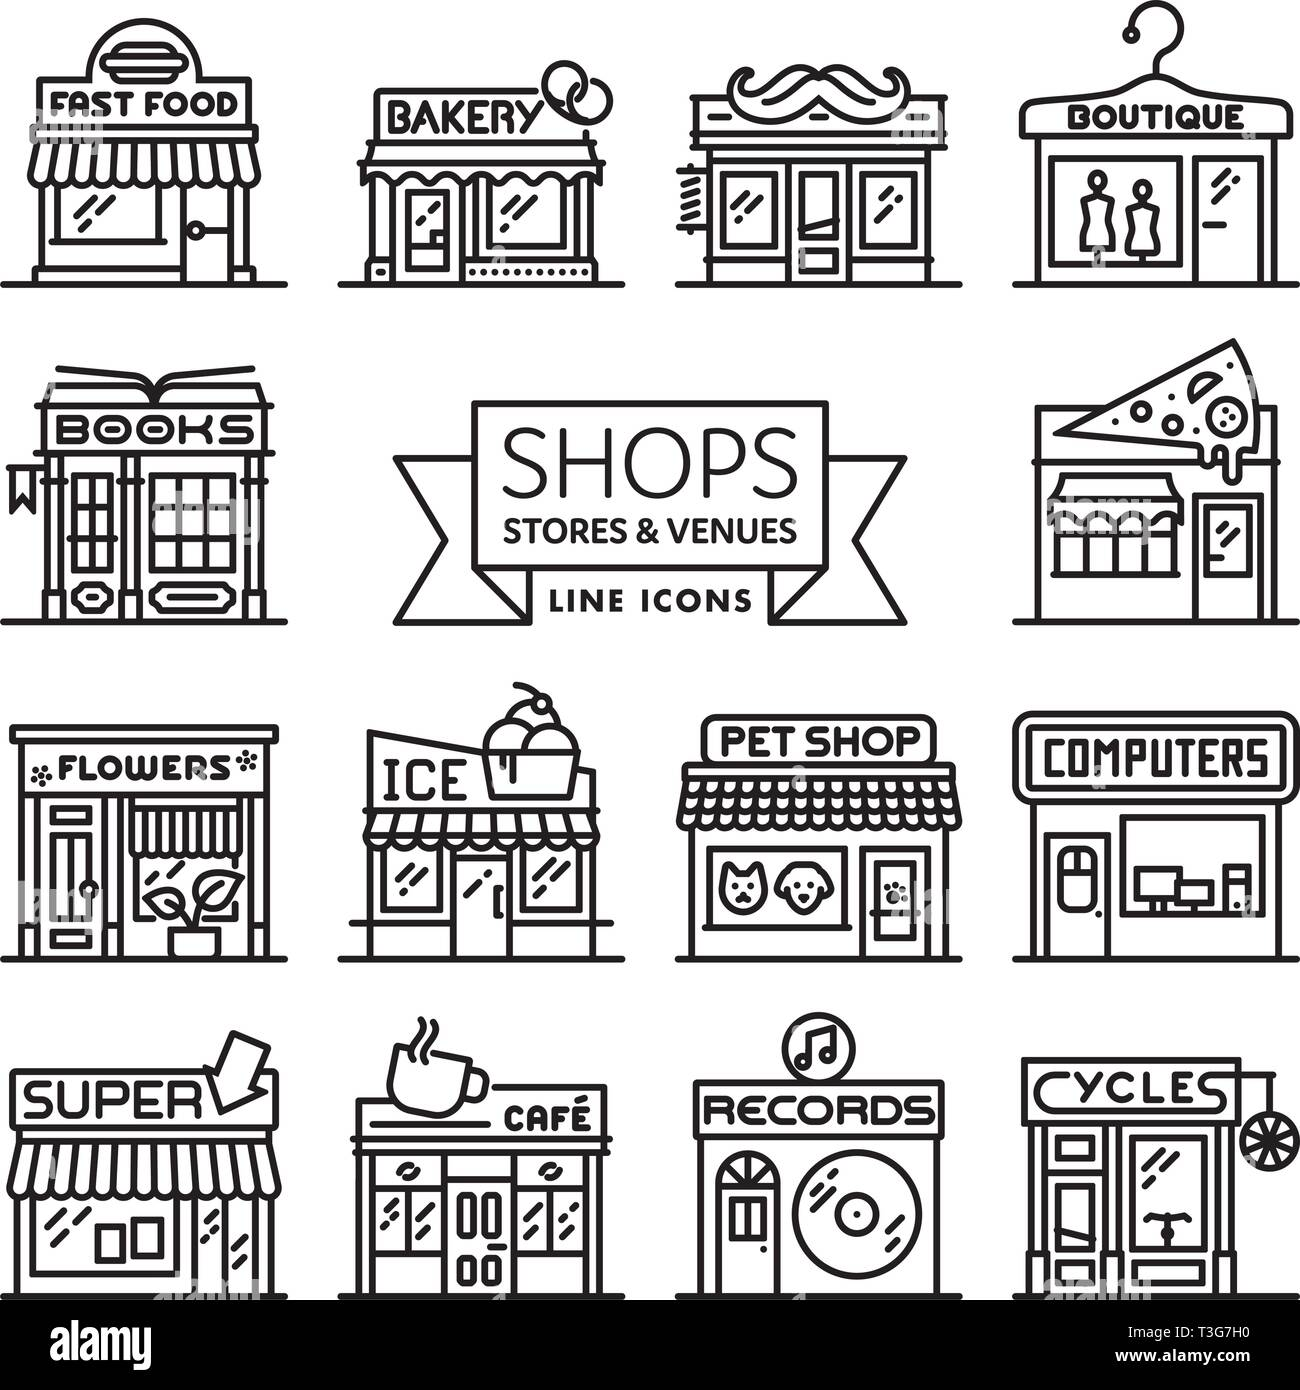 Shops, stores and venues line icons vector illustration collection Stock Vector